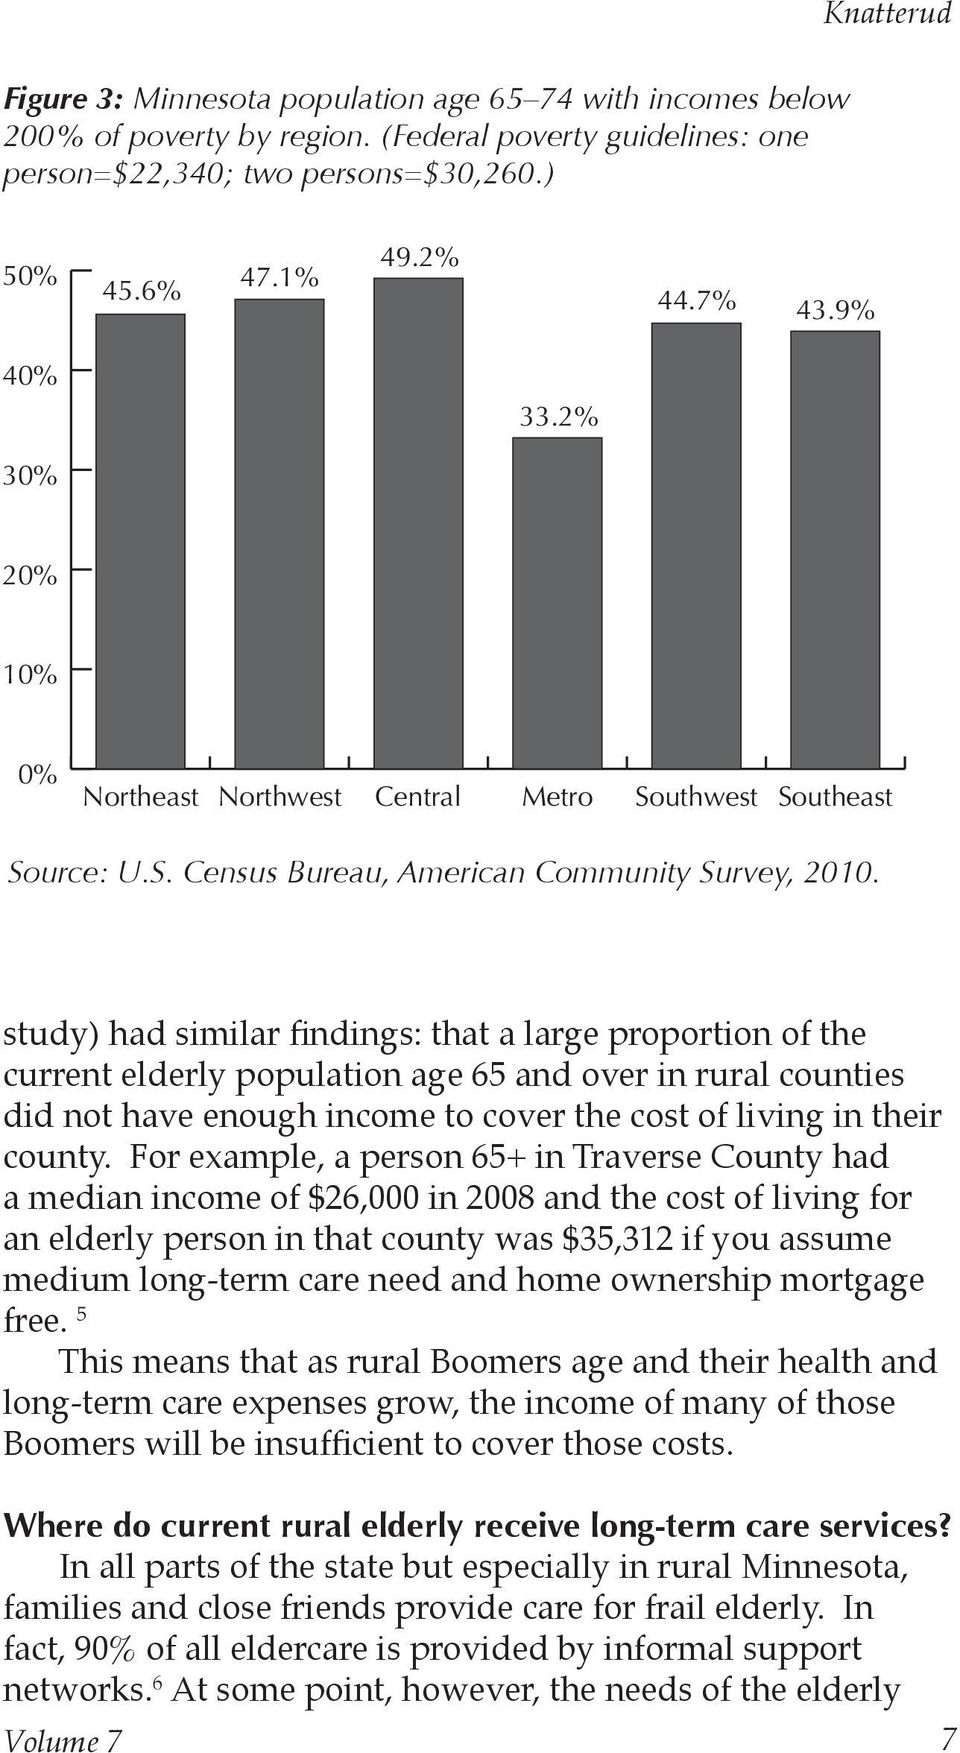 study) had similar findings: that a large proportion of the current elderly population age 65 and over in rural counties did not have enough income to cover the cost of living in their county.